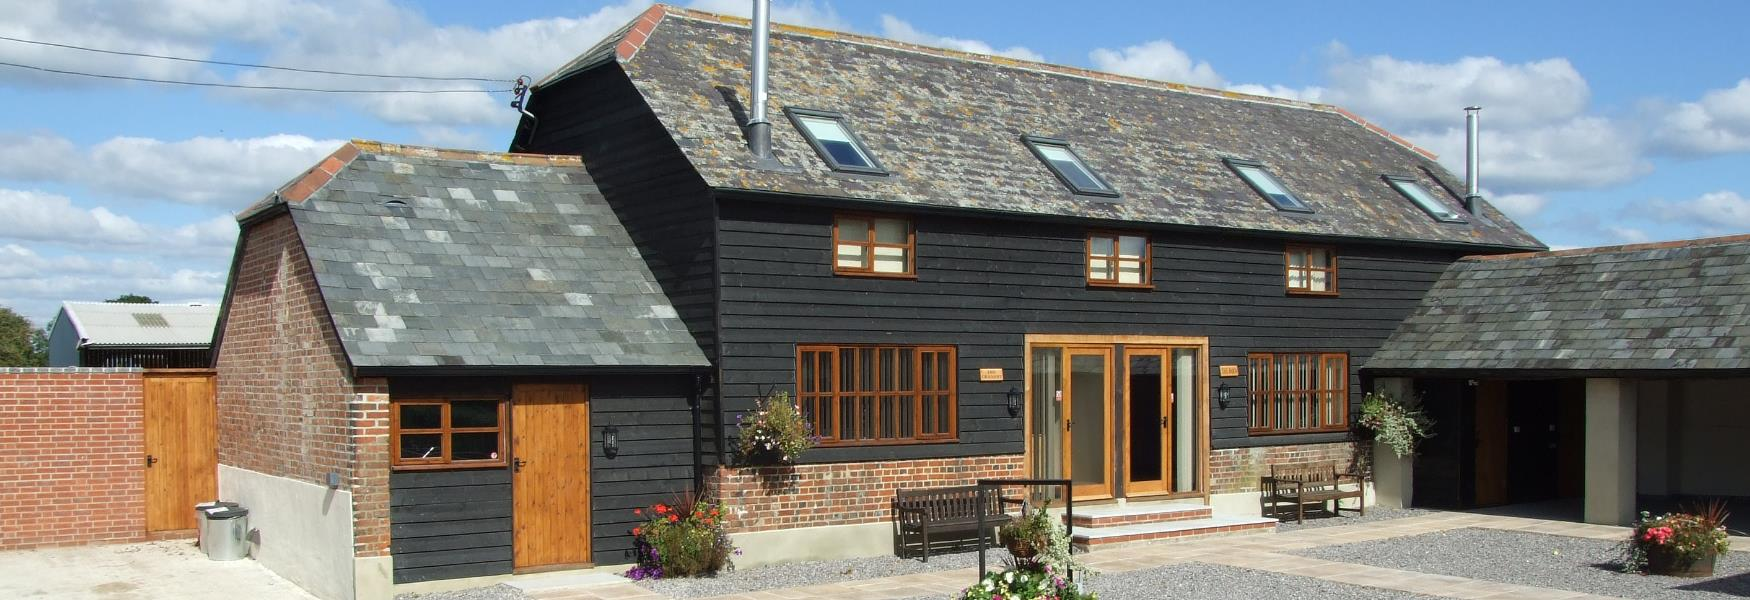 Farmhouse Barn Holiday Cottage Self Catering in the New Forest